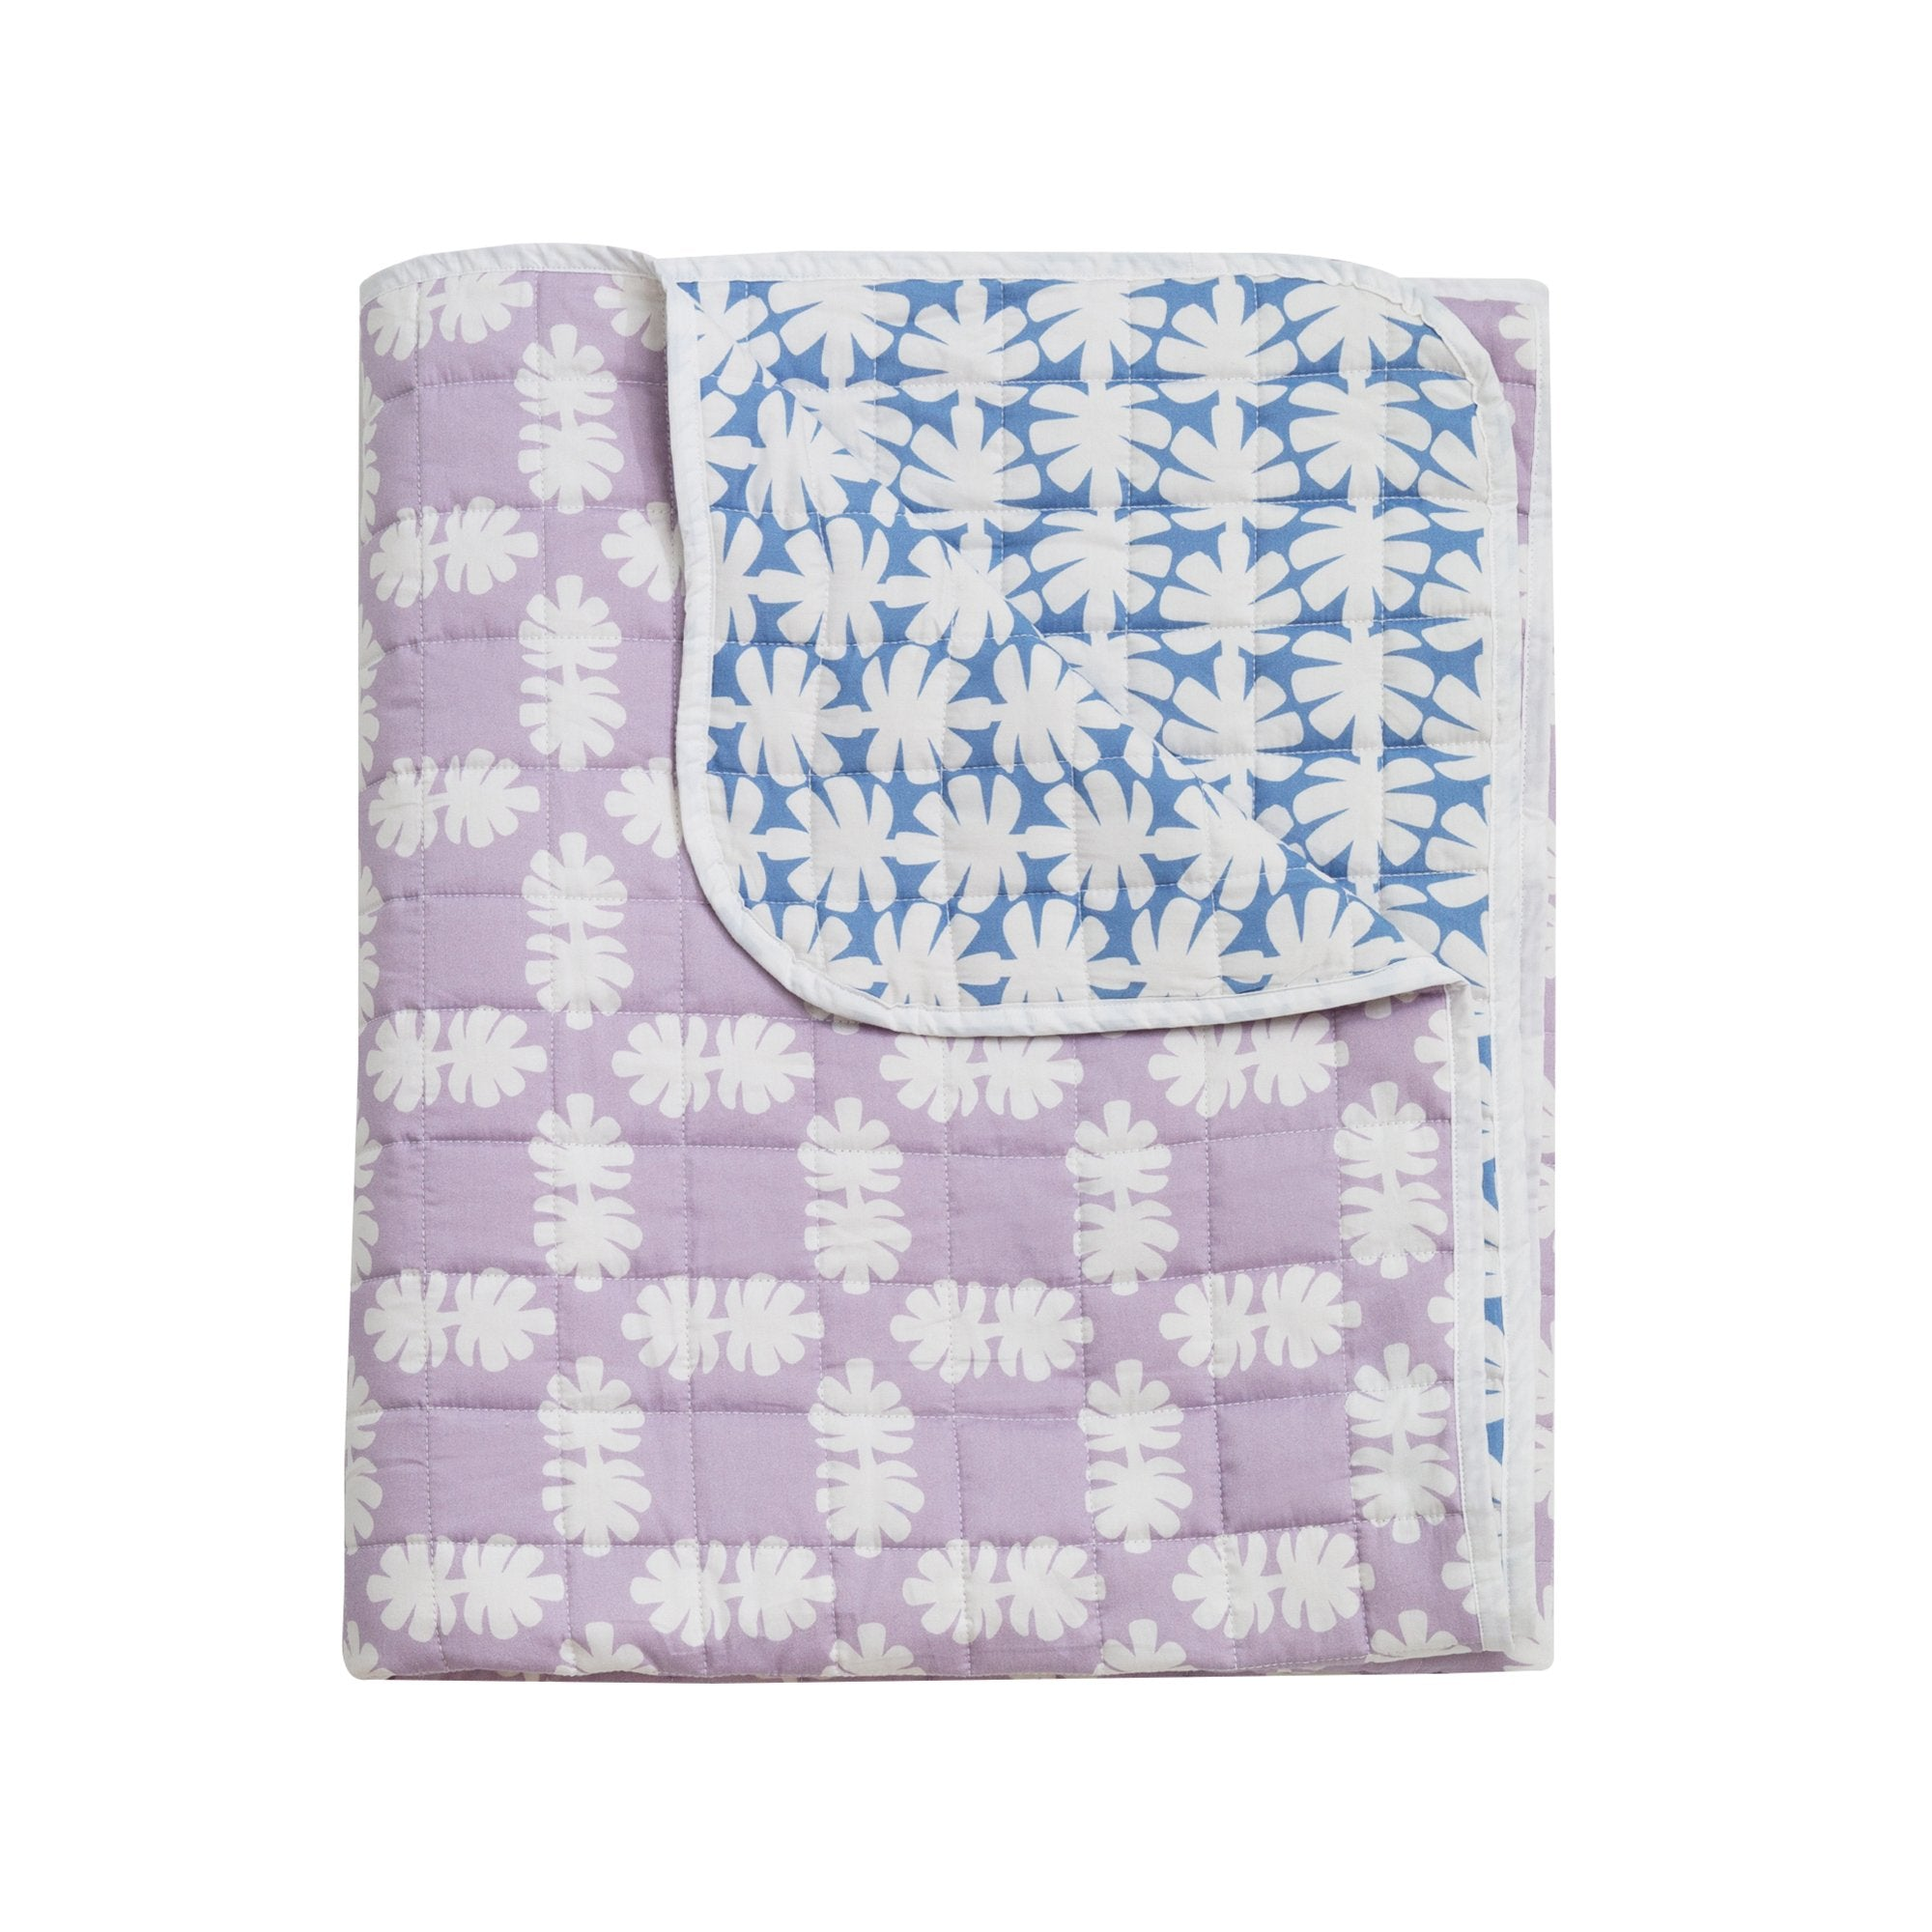 Kikau's Lilac and Blue Coco Palm Quilted Bedspread on white background